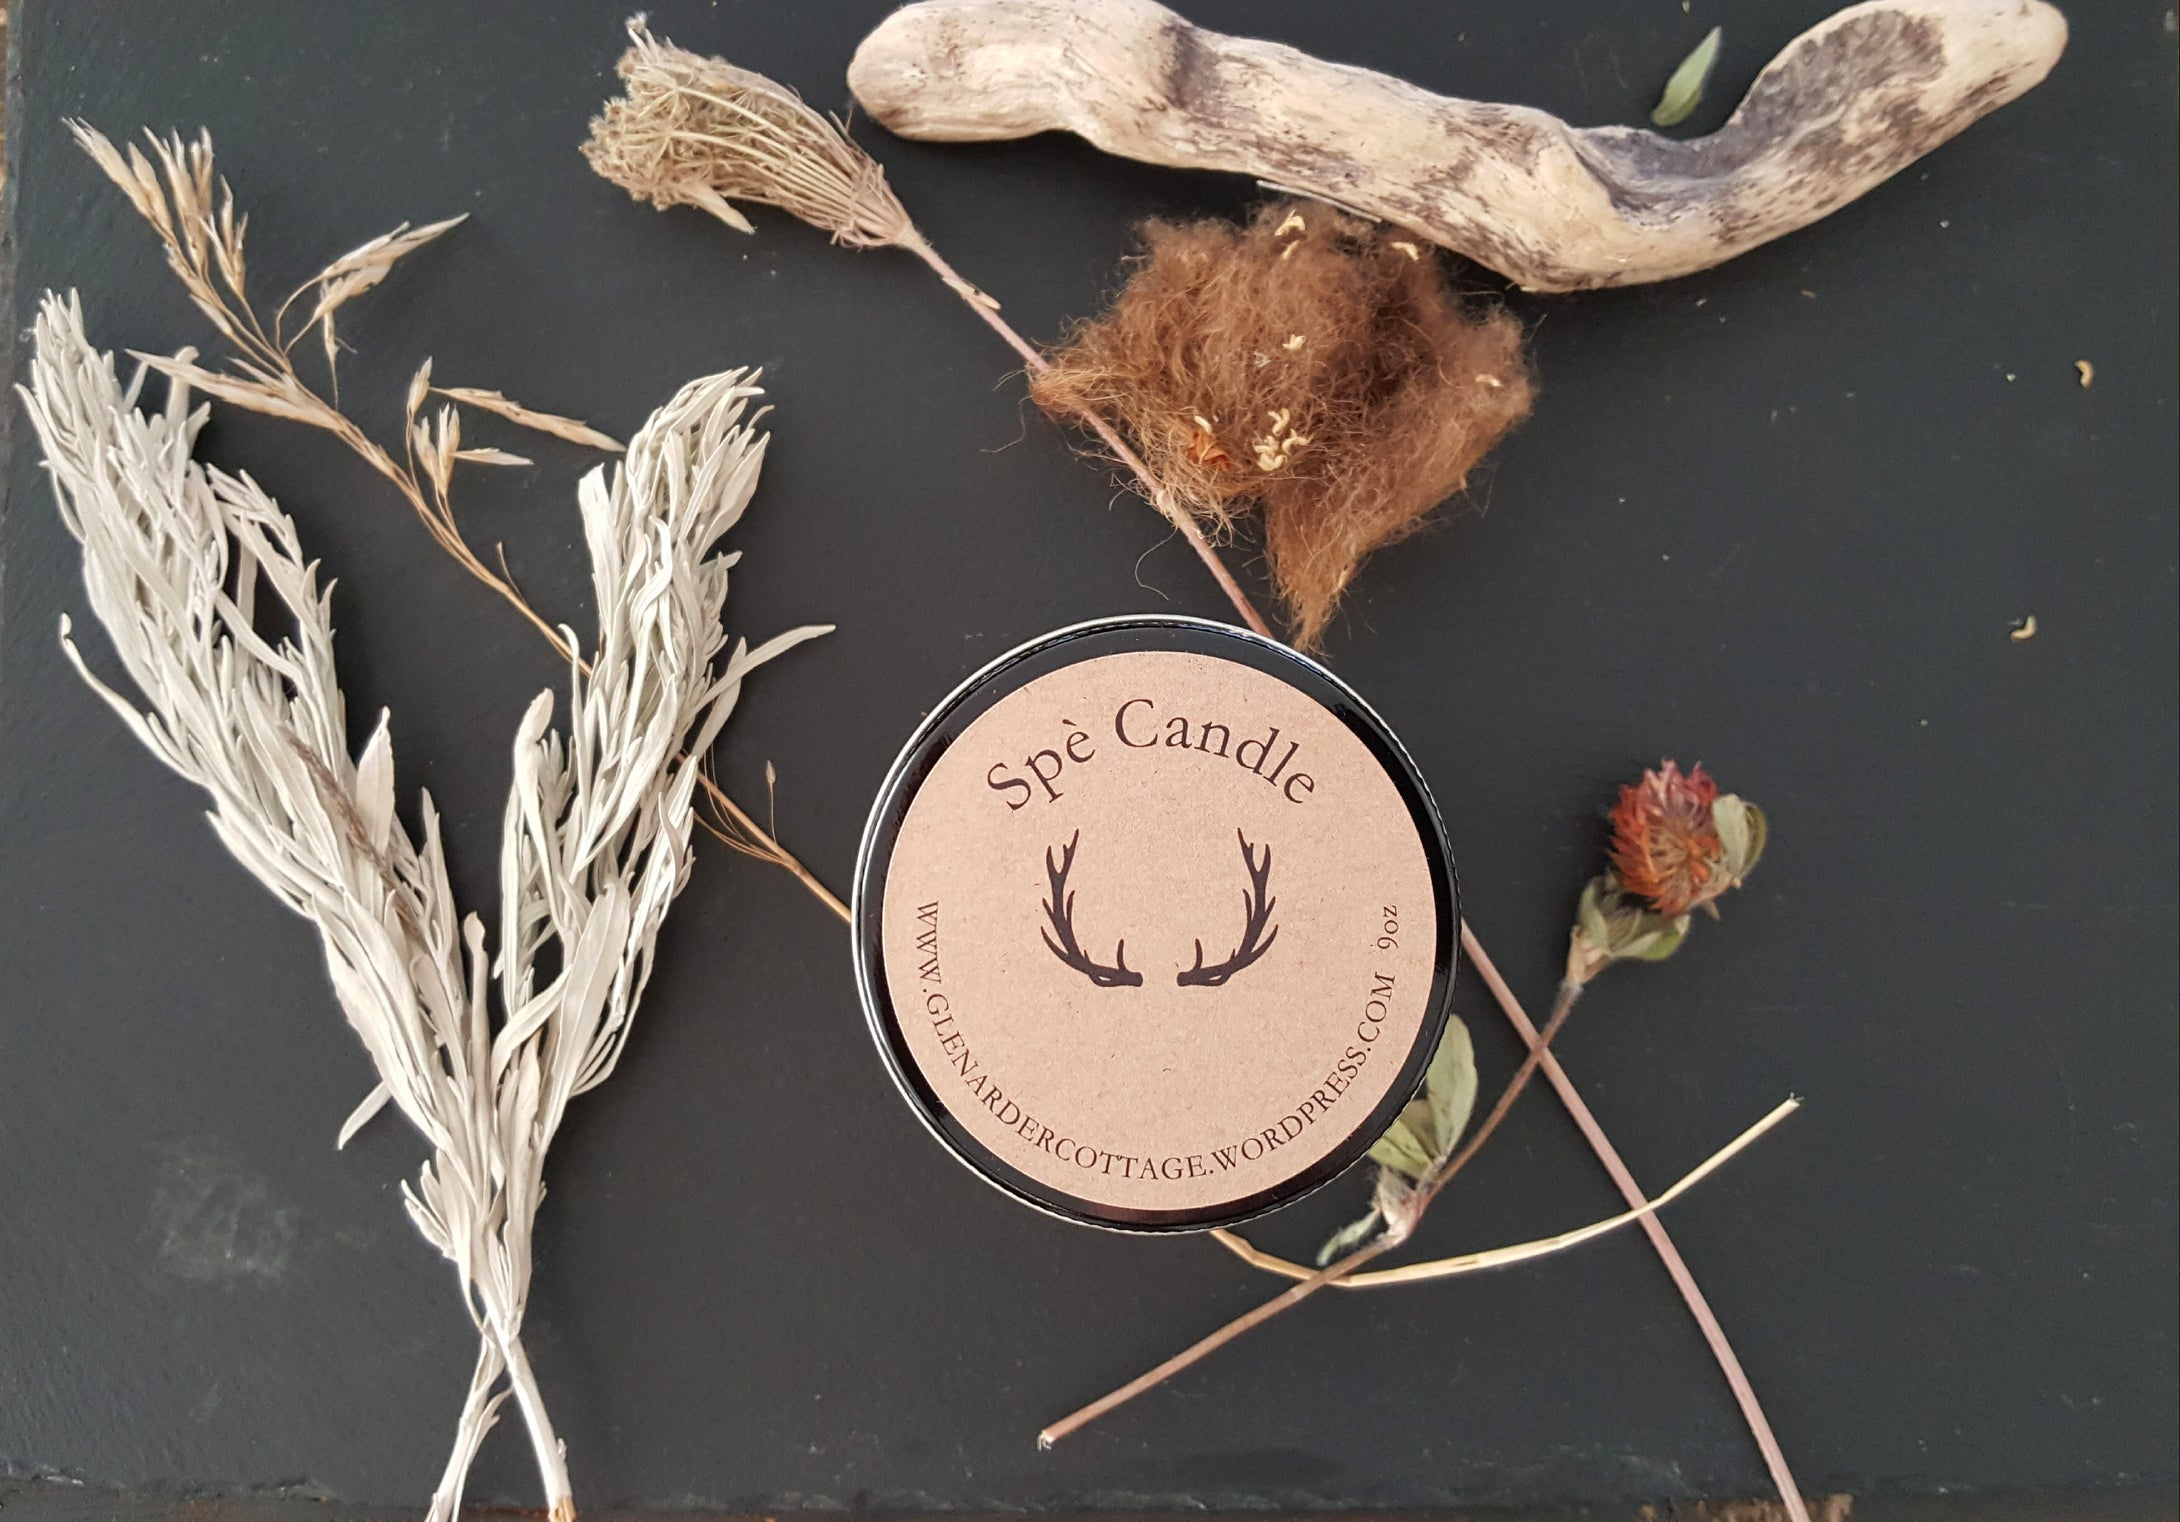 Natural soy candles hand made in Scotland. Inspired by the natural beauty and scents of Scotland